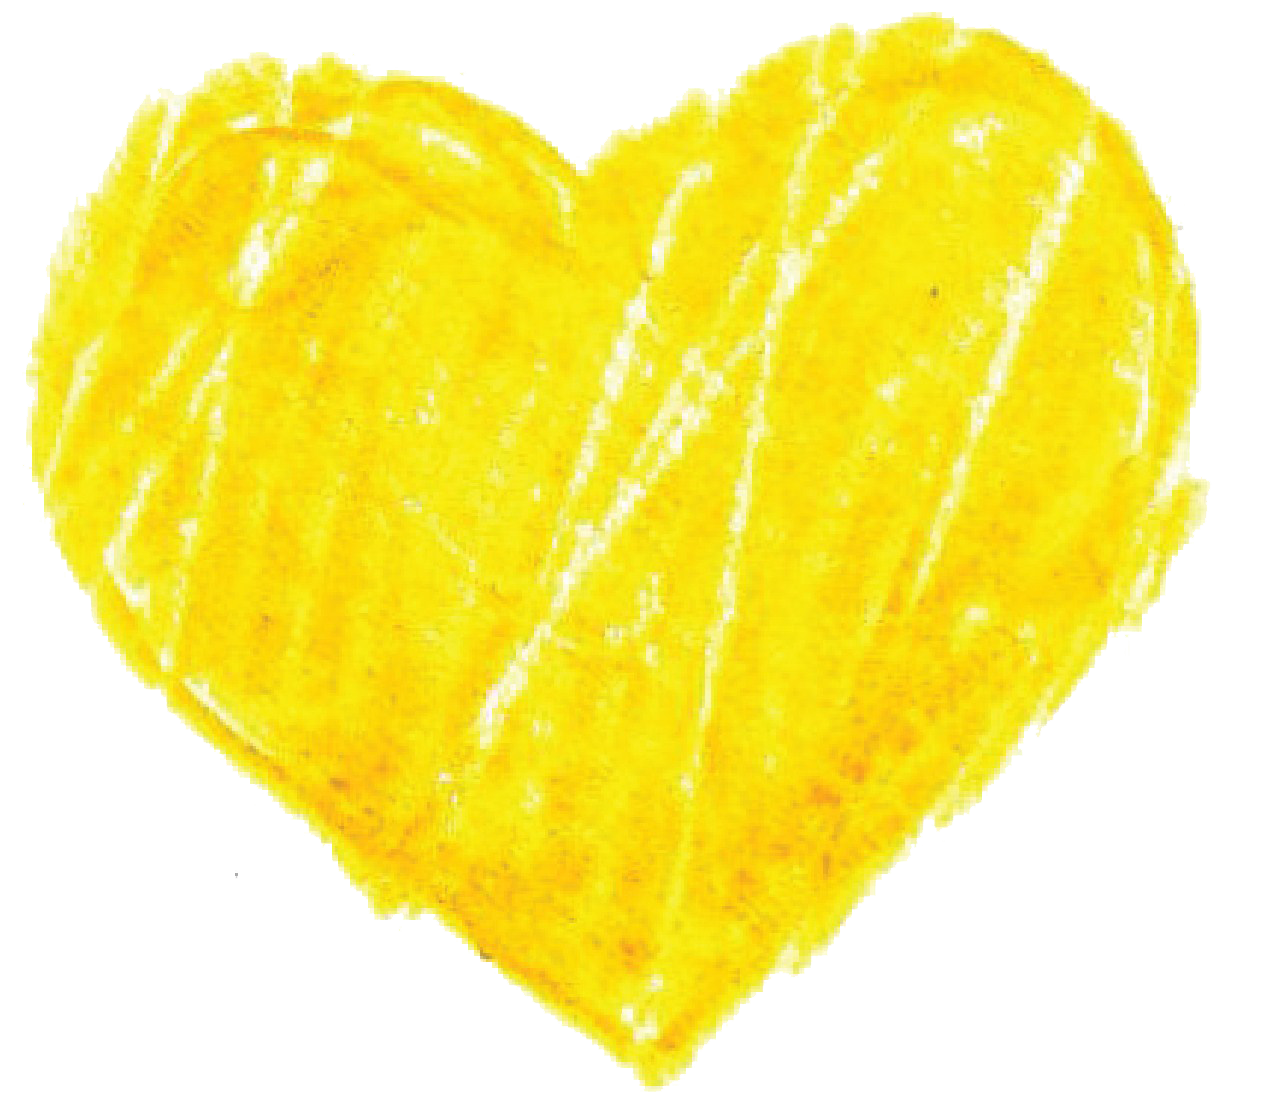 Yellow heart png. Pic mart